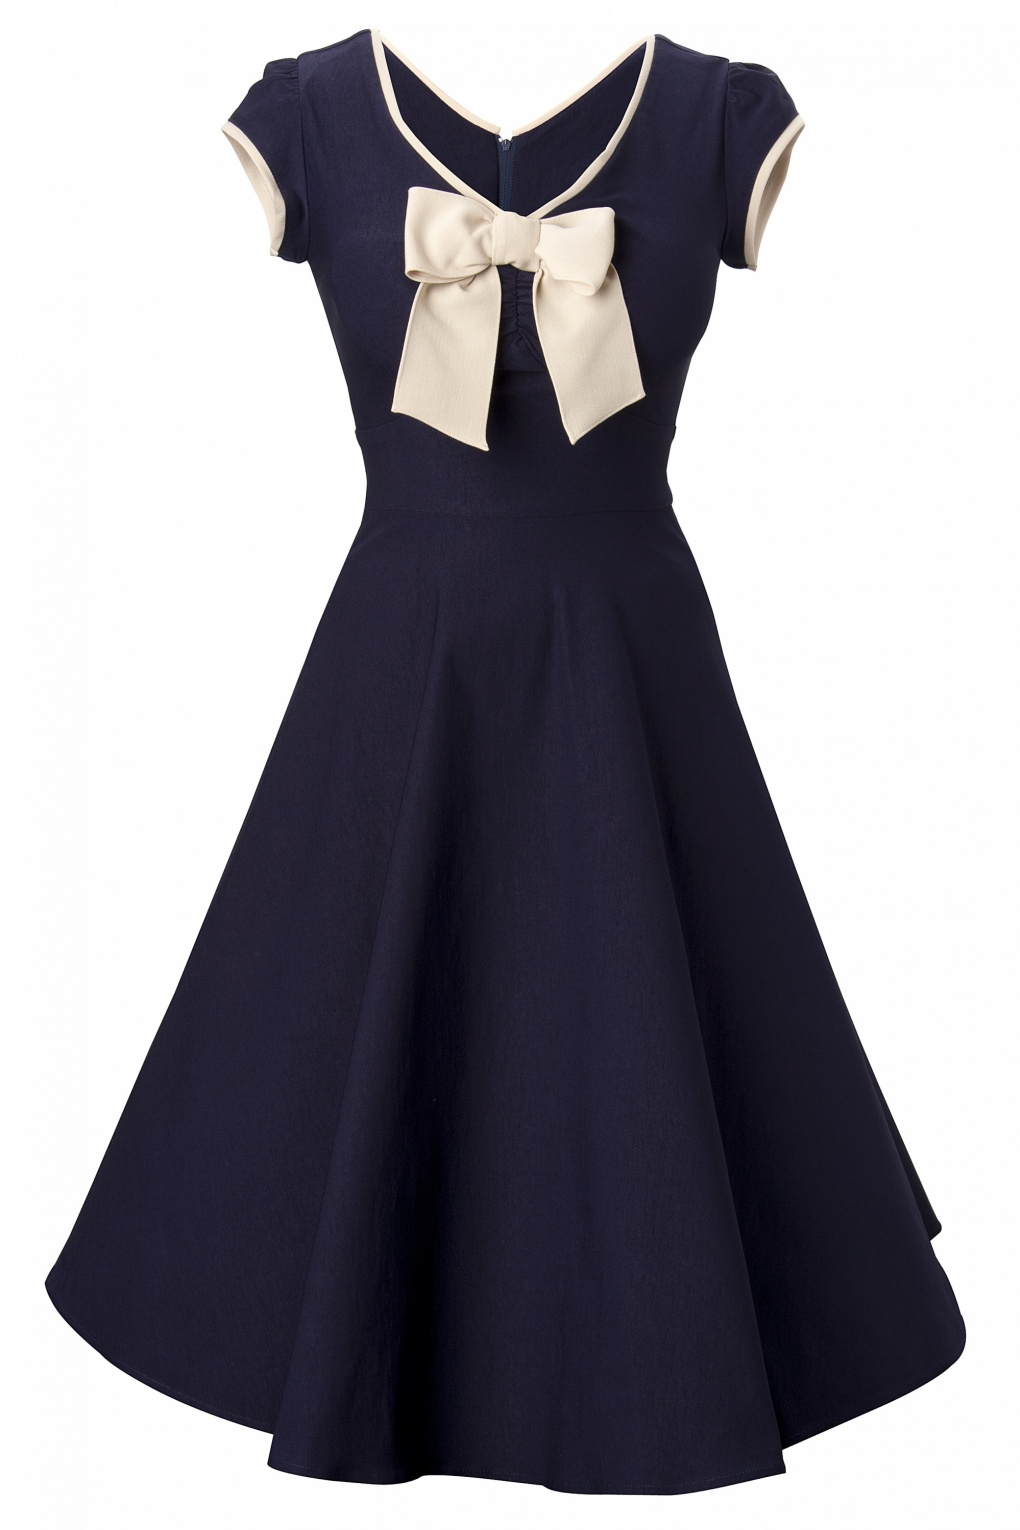 Stop Staring! - 50s Belinda Navy Tan swing dress